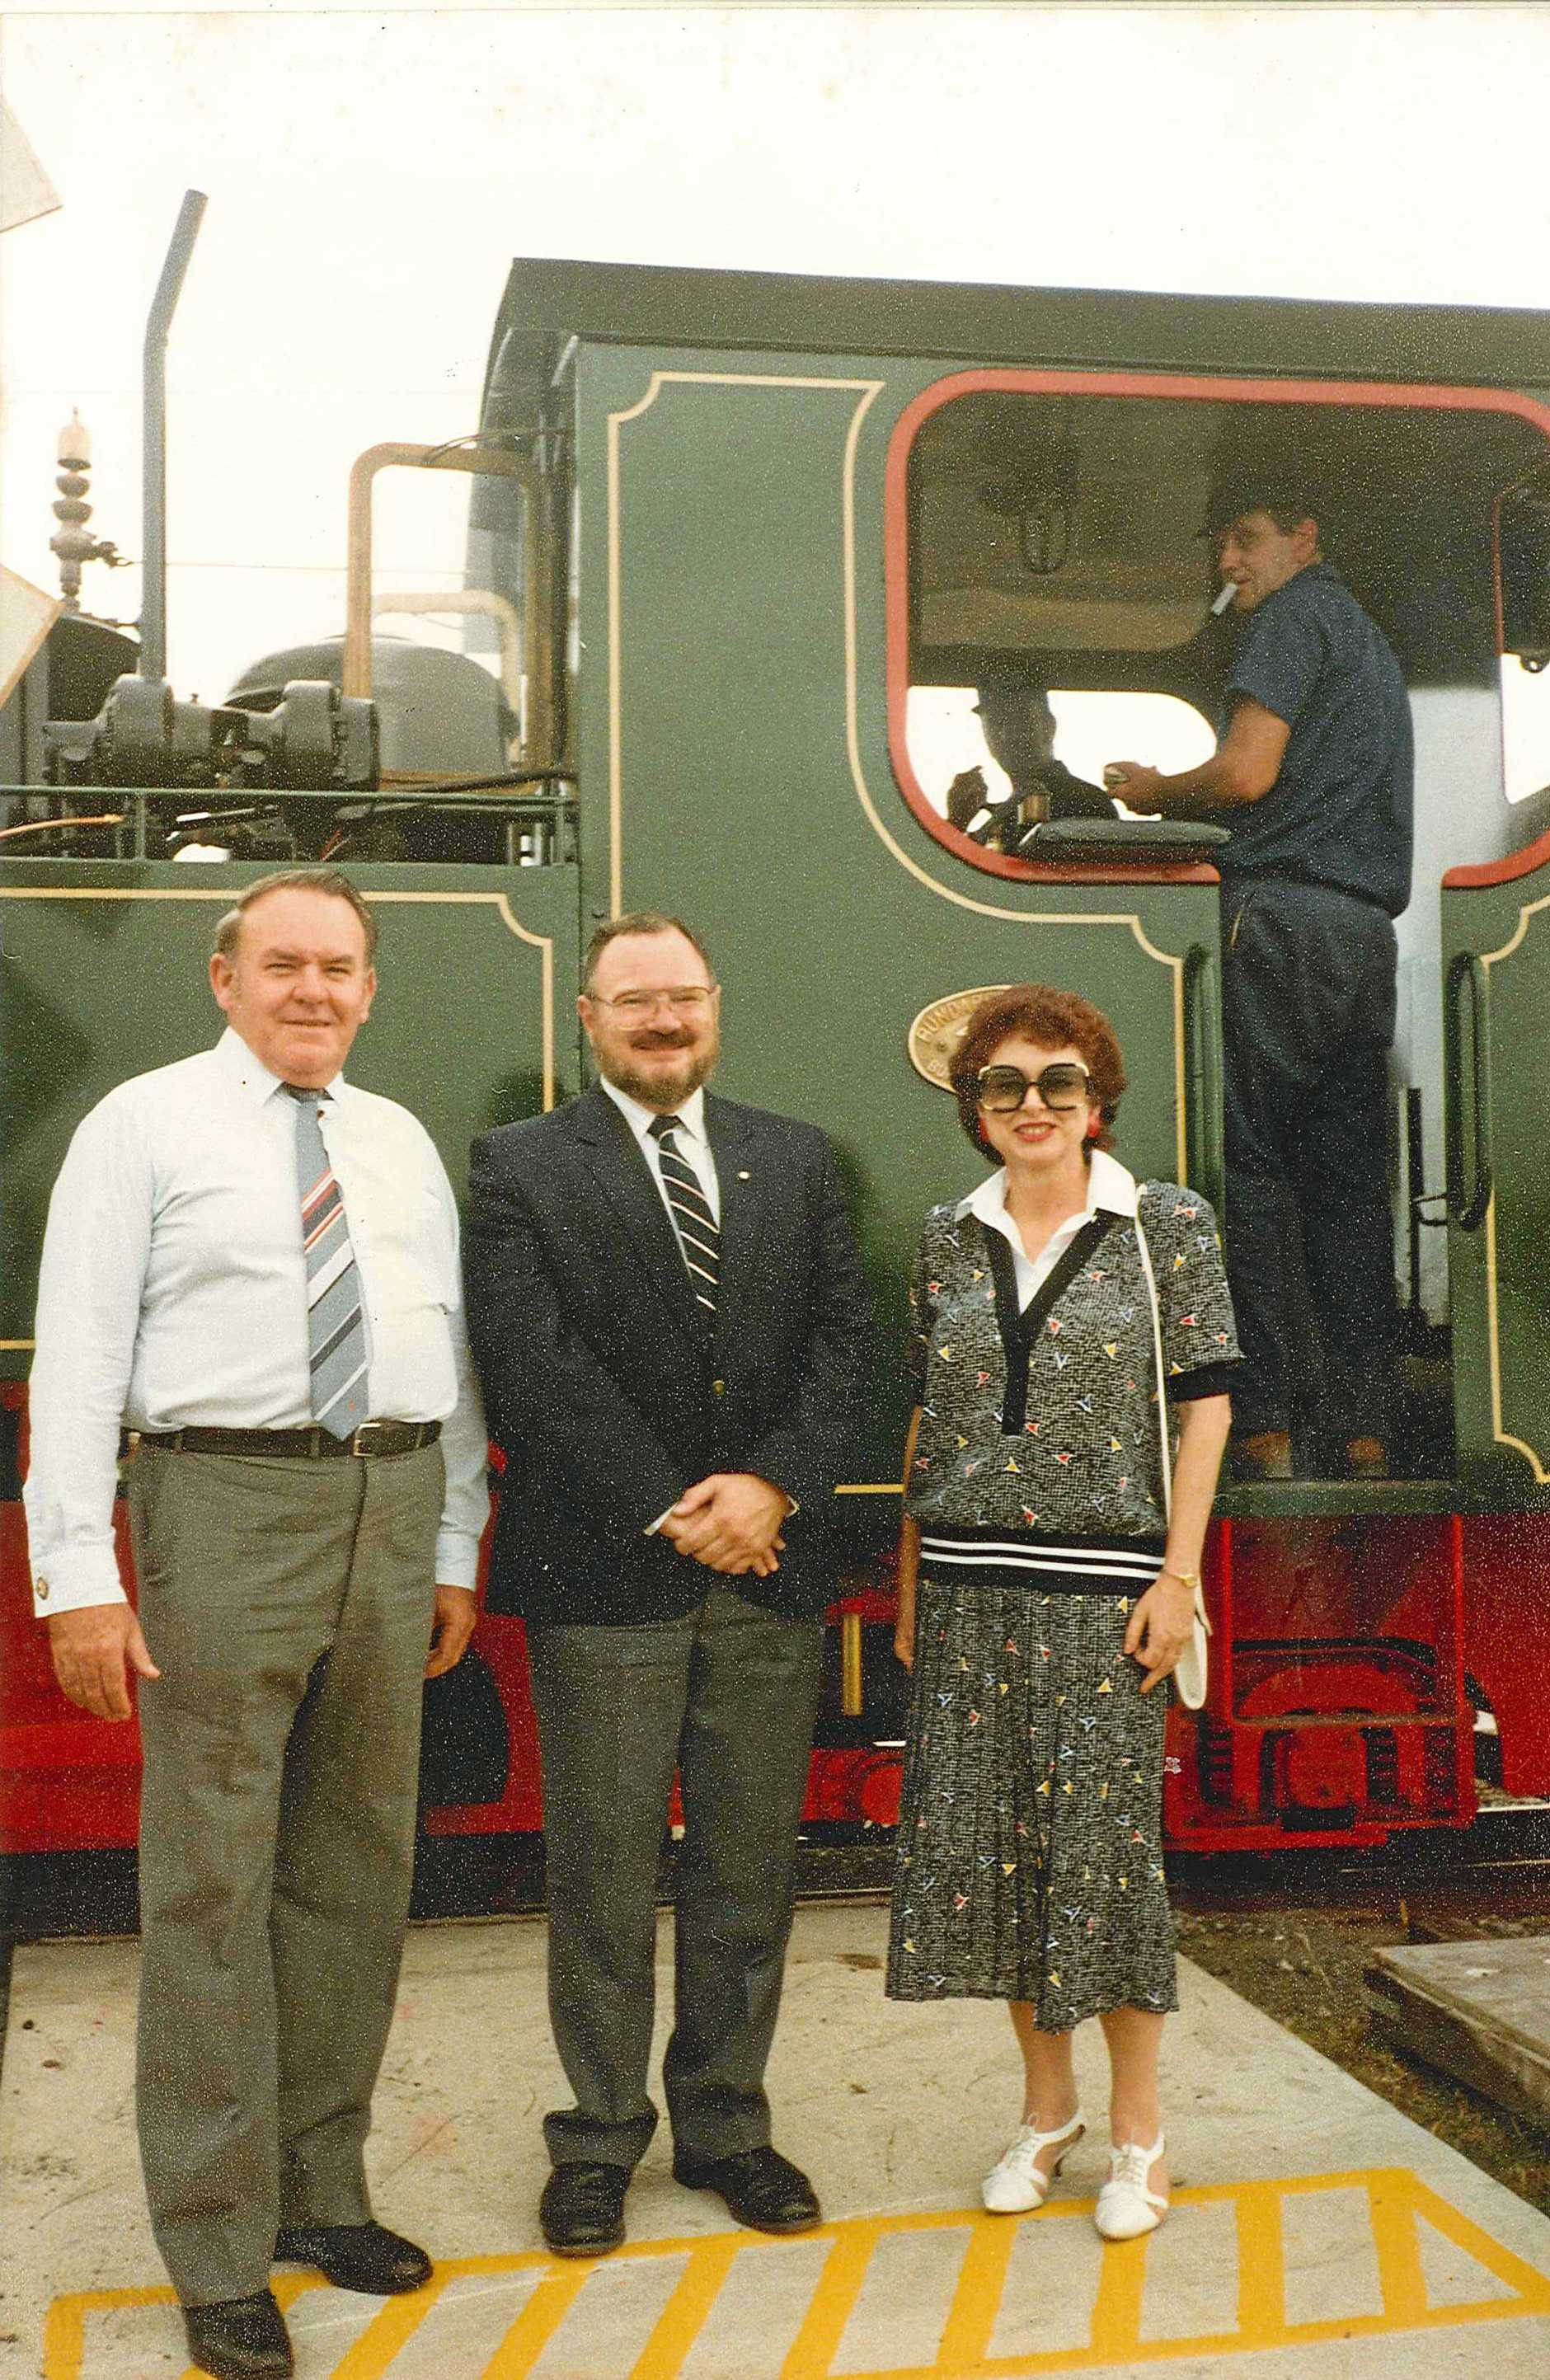 John Faircloth, Jeff Boreham and Pat Faircloth at the opening of the Bundaberg Railway Museum in 1988.